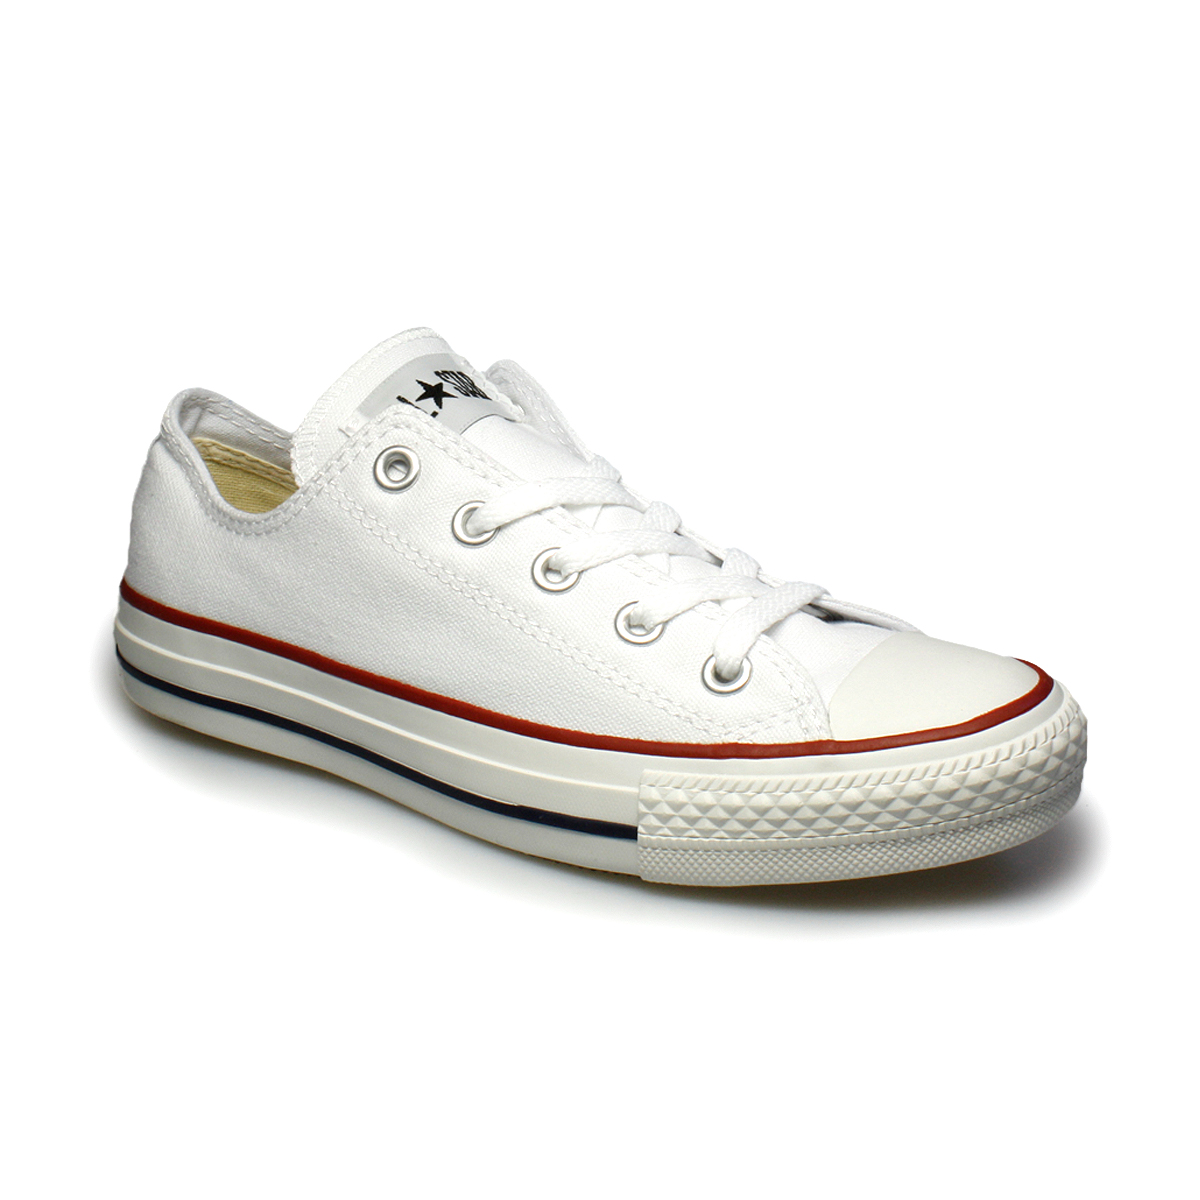 Converse All Star Lo White Canvas Trainers Sneakers Shoes ...